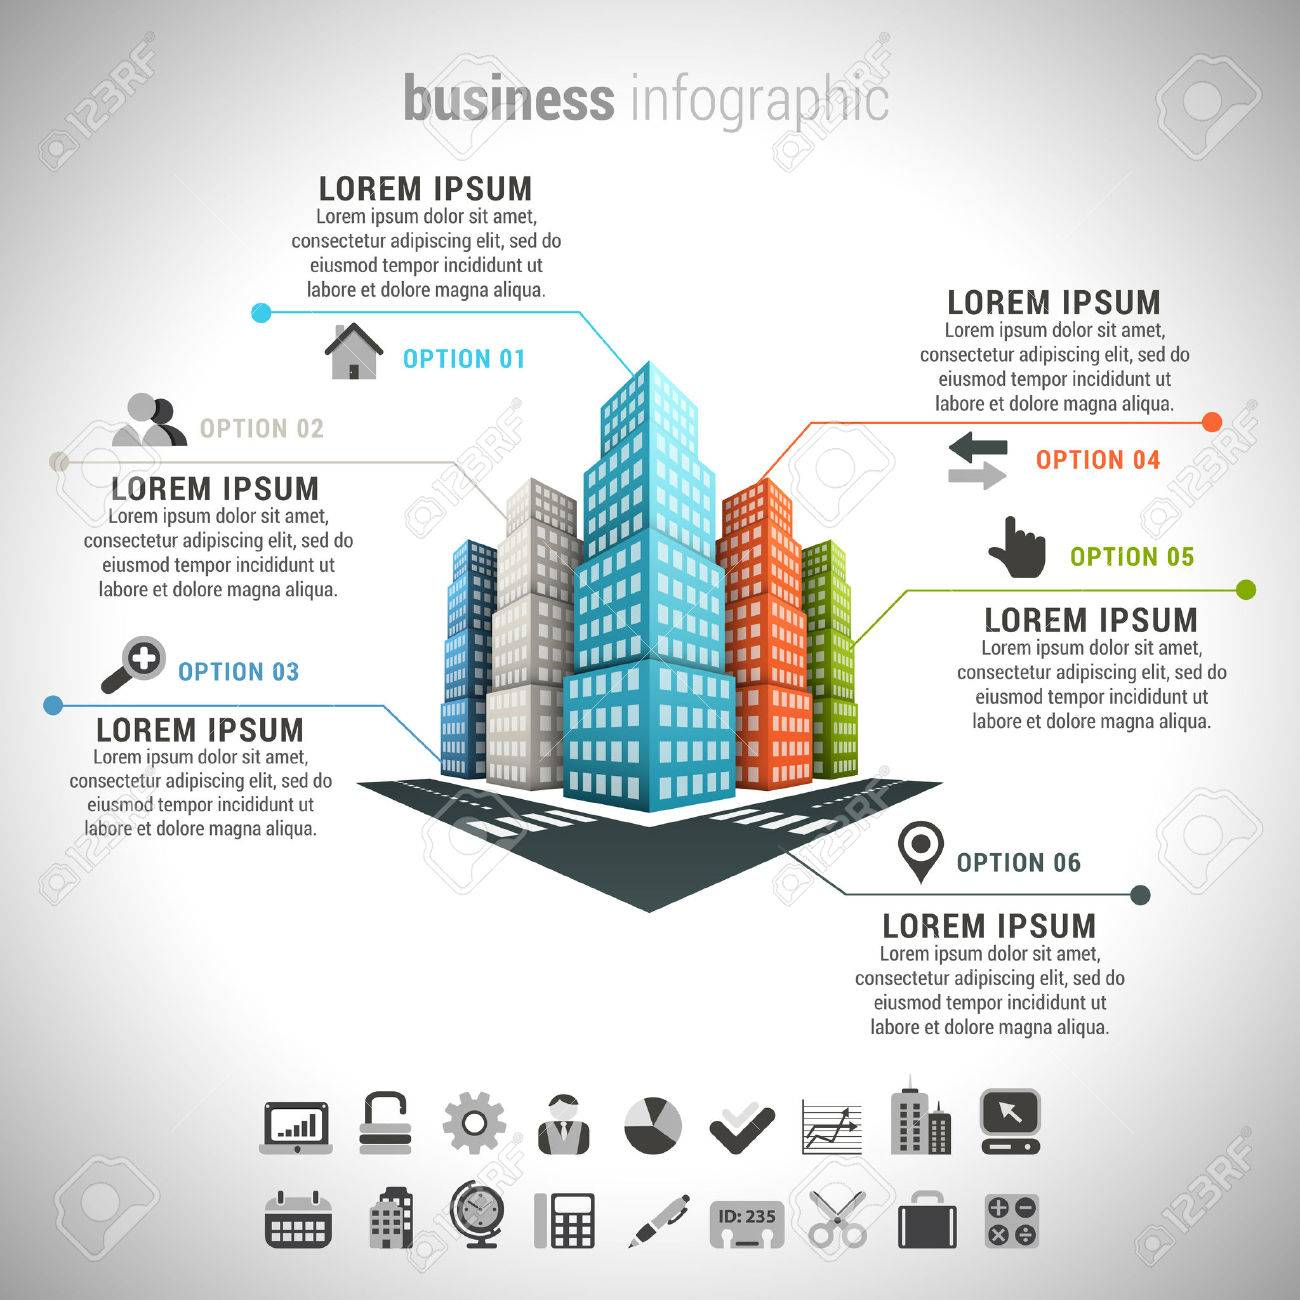 Vector illustration of business infographic made of buildings. - 49137987